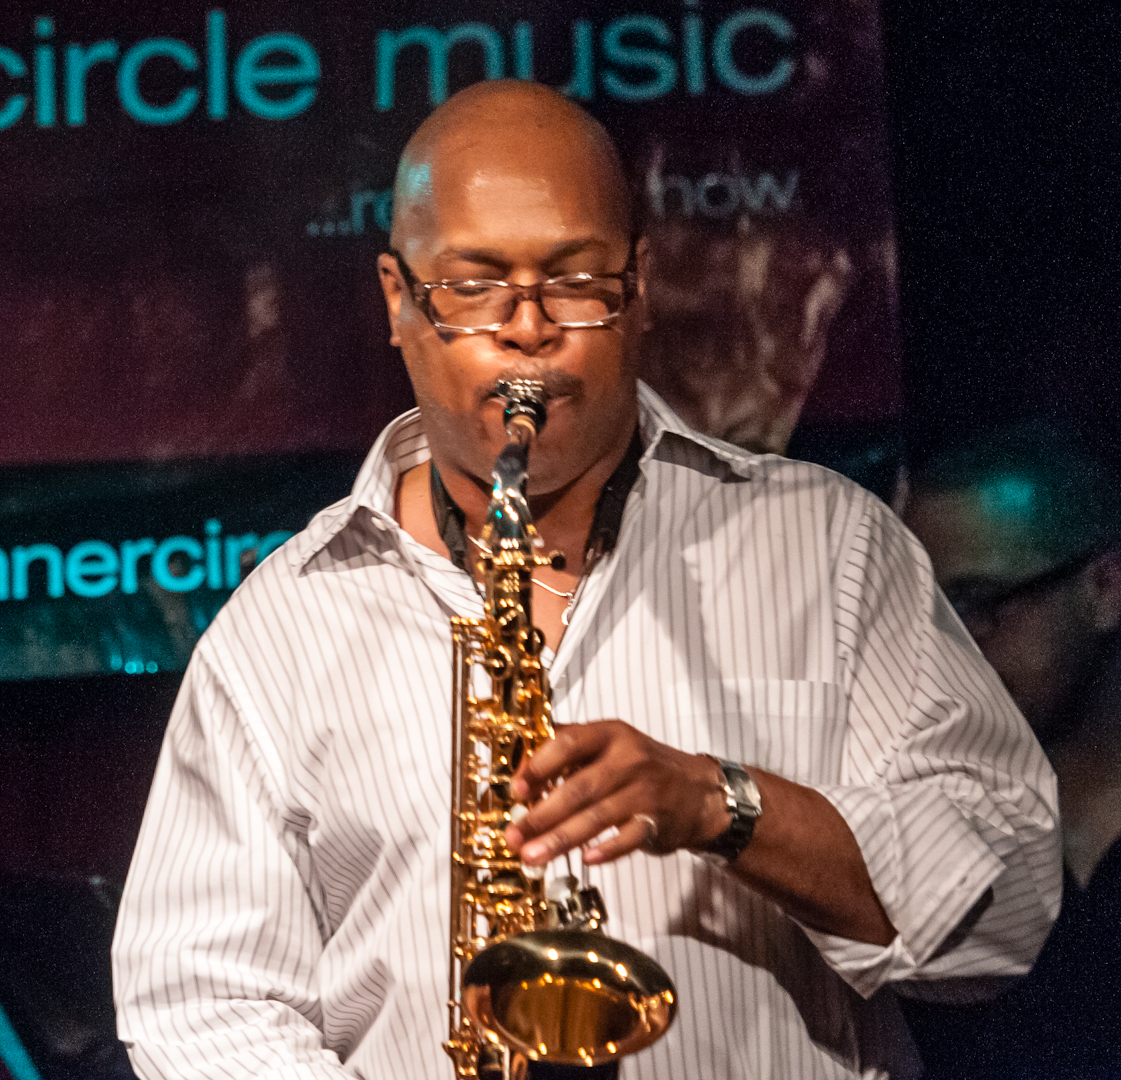 Greg Osby with Sextet at the Inner Circle Music Festival at the Cornelia Street Cafe